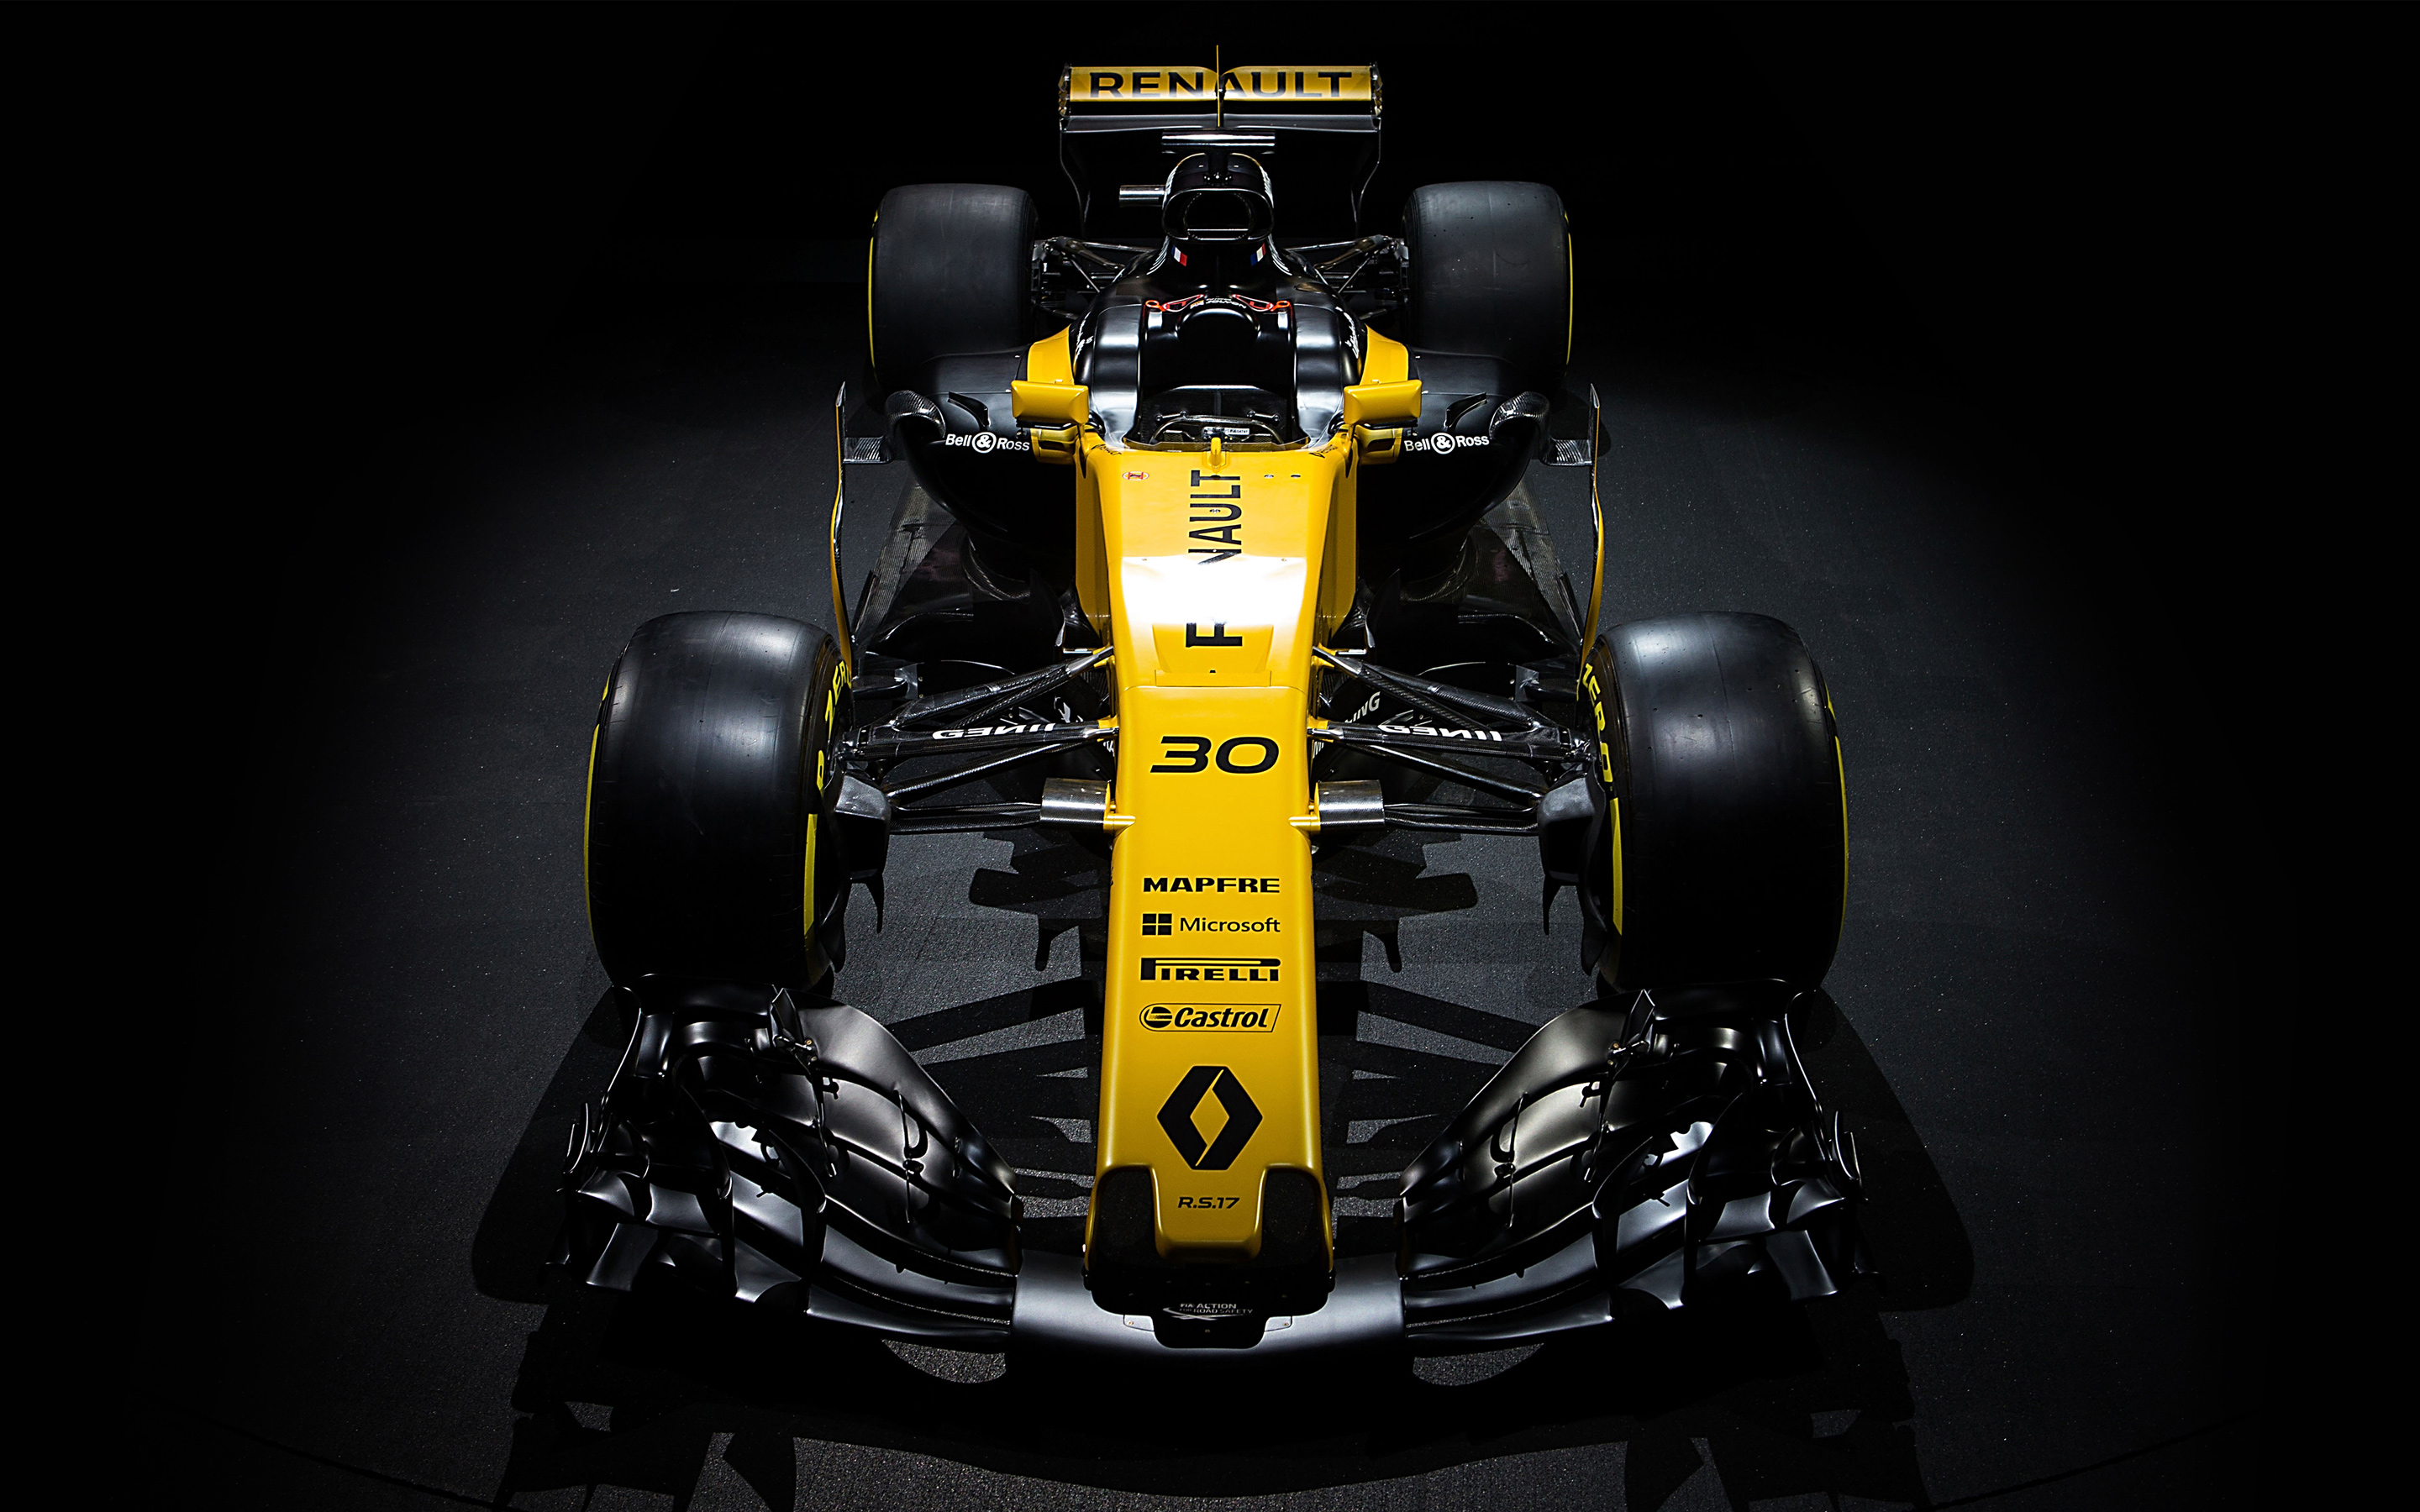 2880x1800 - Renault RS Wallpapers 27